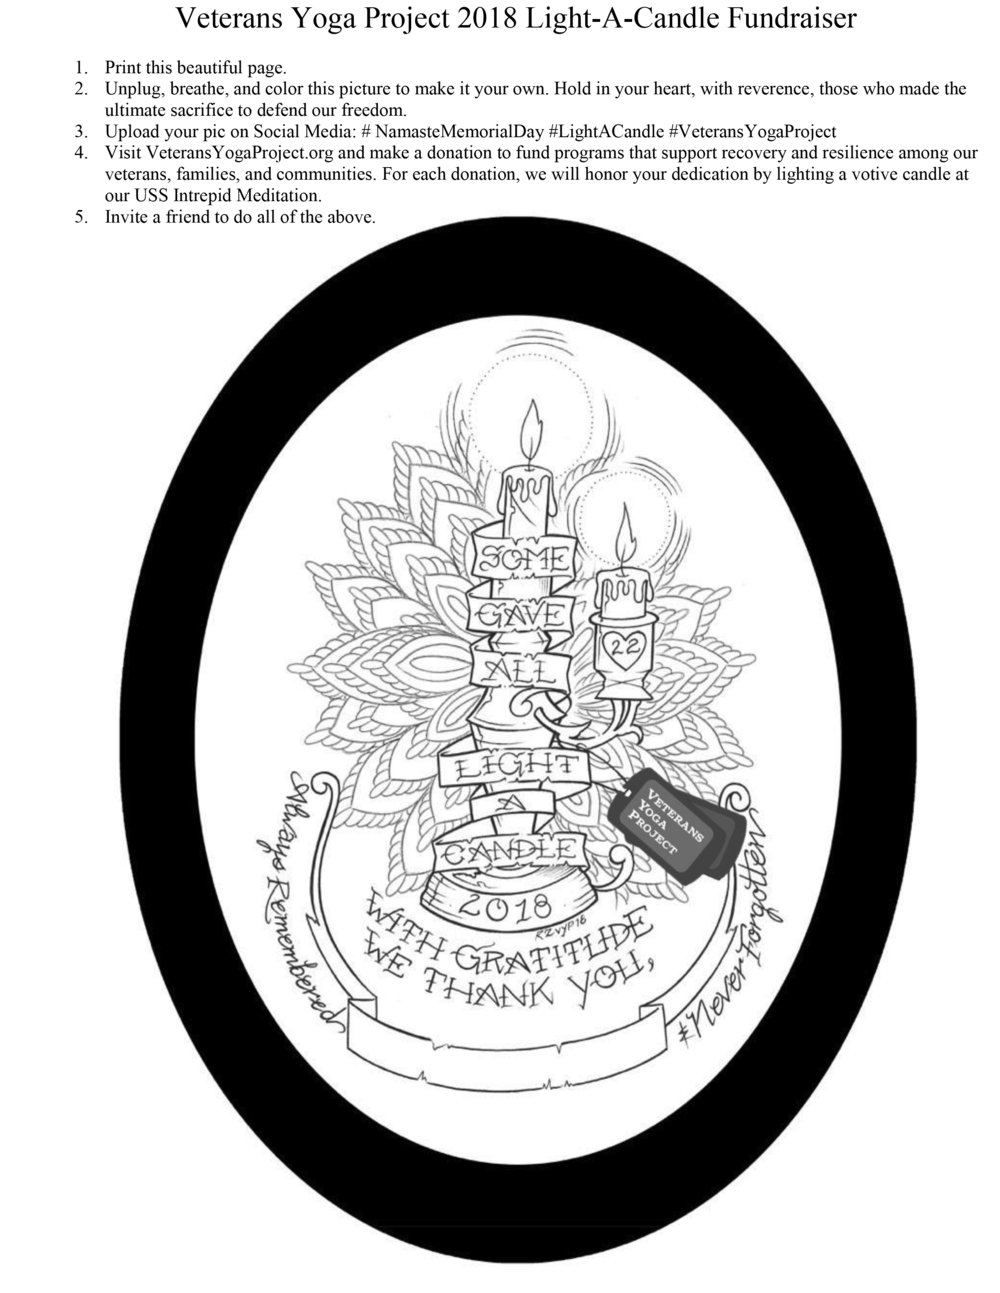 LAC.2018.mandala.oval.logo.instructions.png